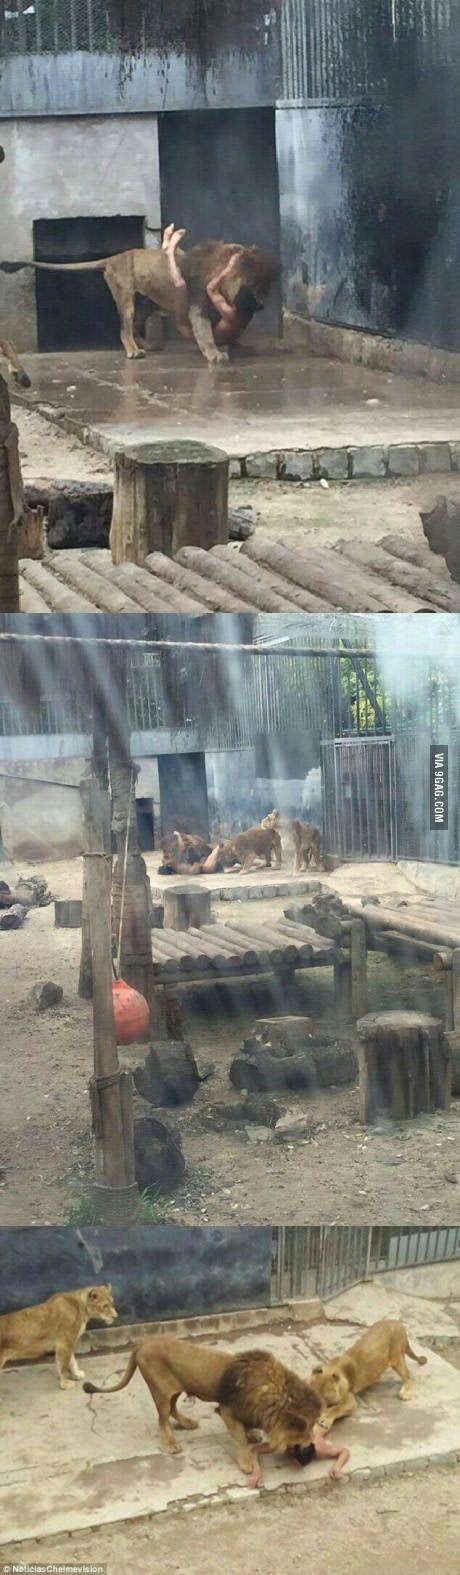 Guy tried killing himself by breaking into the lions cage at the local zoo. He didn't die and zoo had to kill 2 lions for attacking him :(